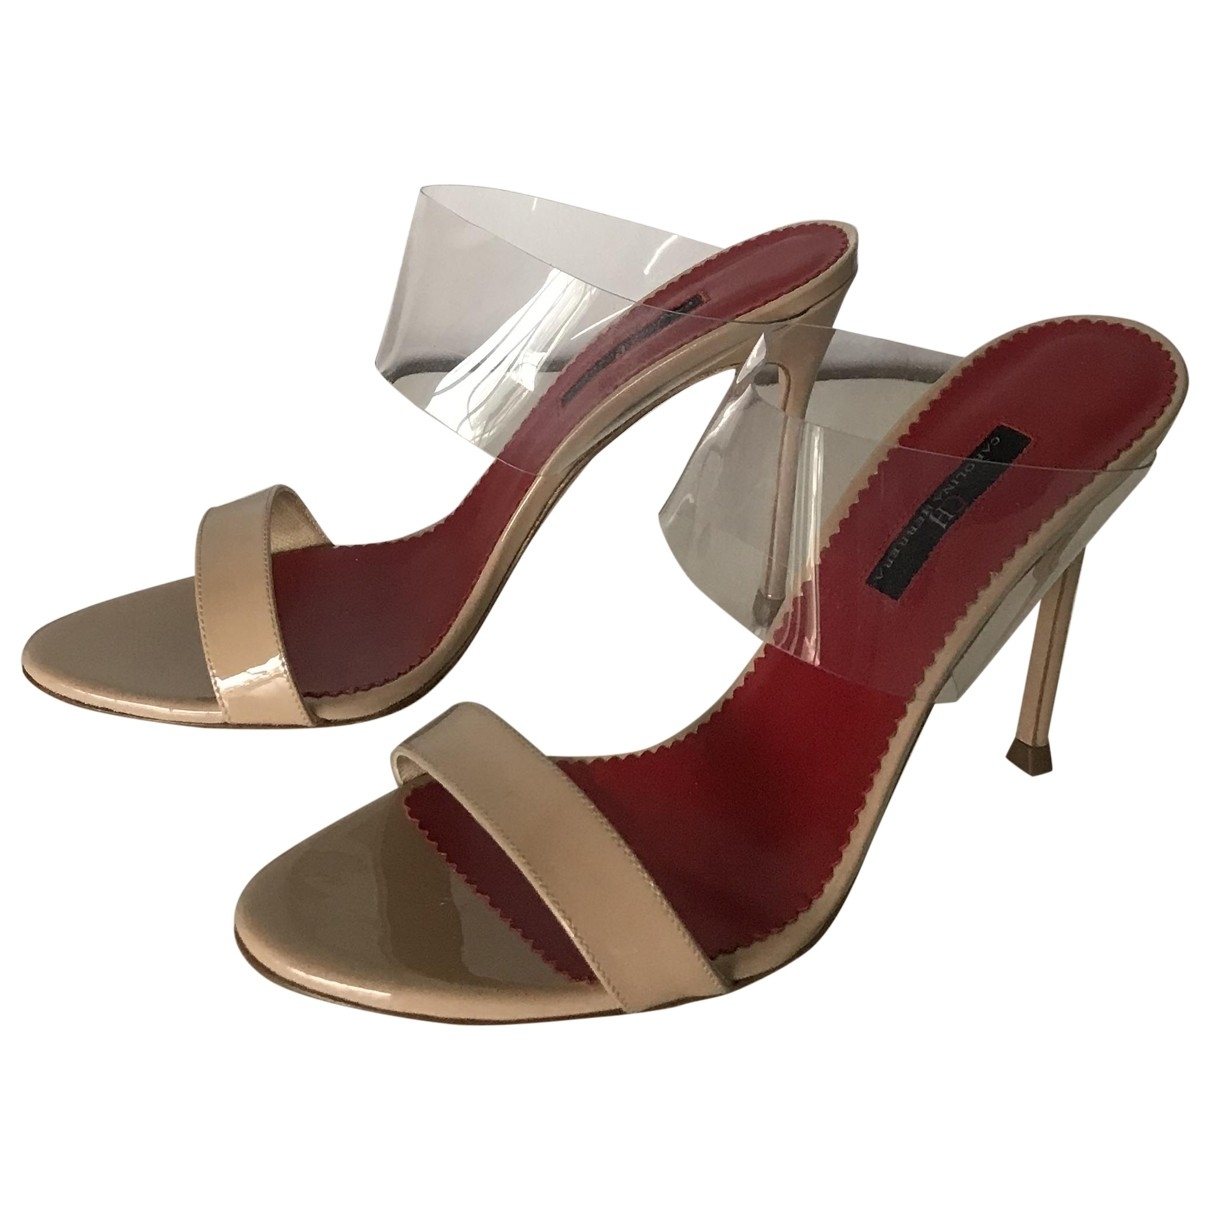 Carolina Herrera \N Ecru Leather Heels for Women 38 EU